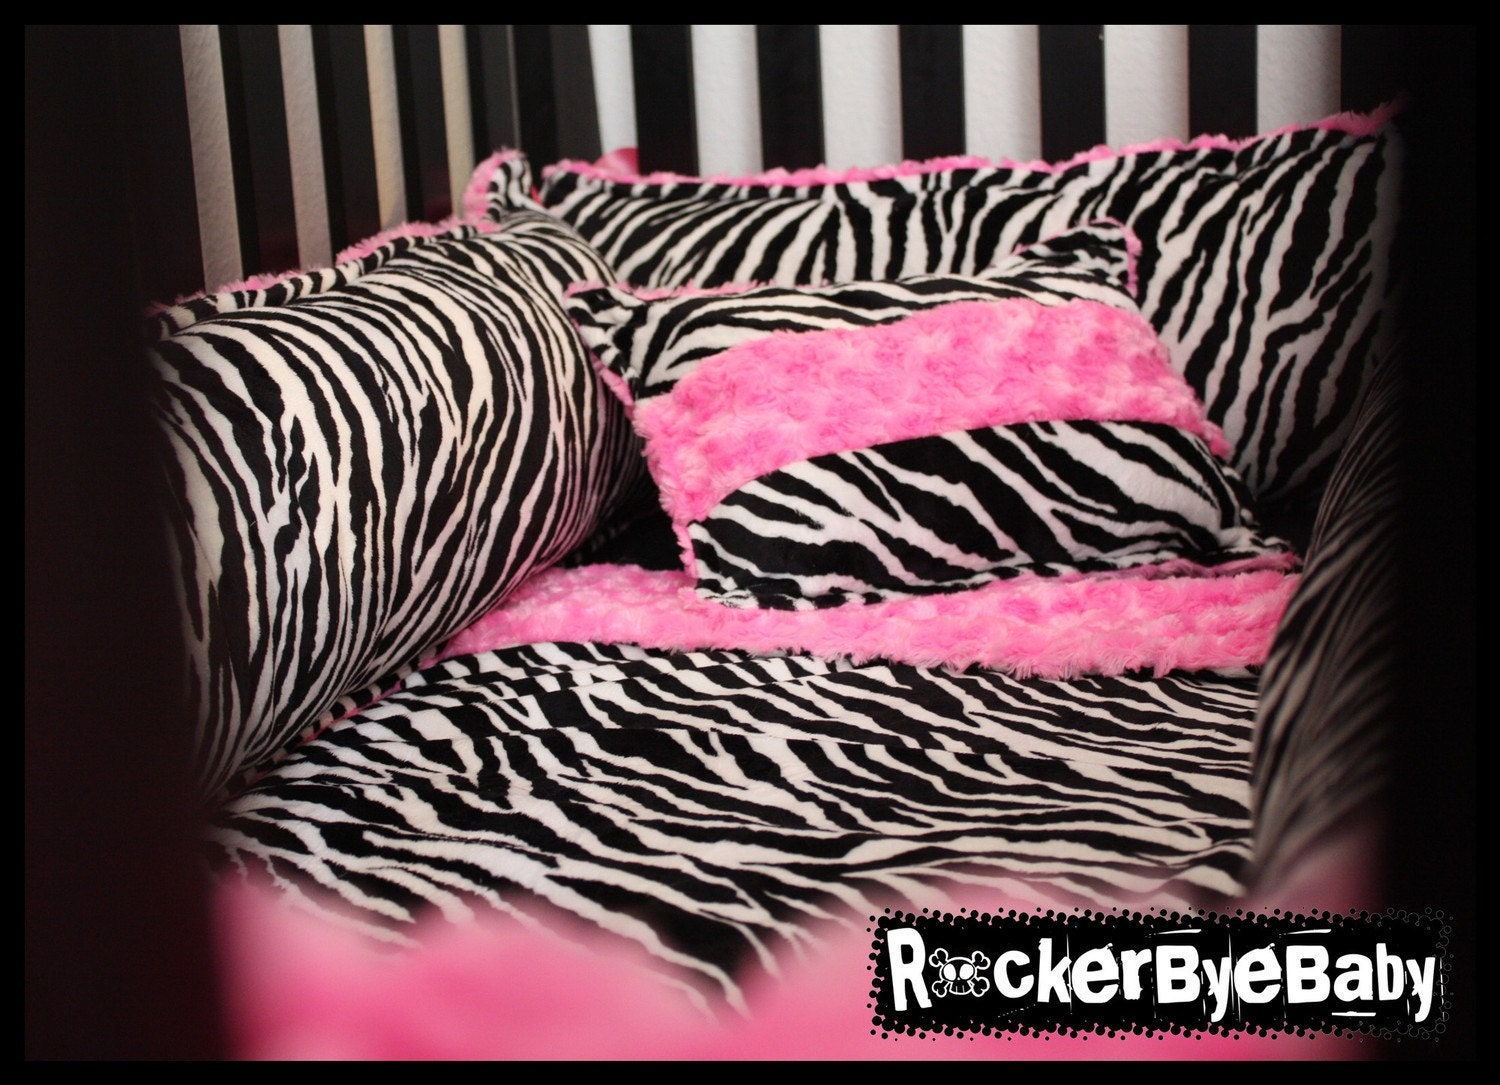 Baby crib zebra print bedding - Punk Animal Paisley Or Baroque Print Four Piece By Rockerbyebaby Home Crib Bedding Sets Kennedy Tailored Baby Bedding